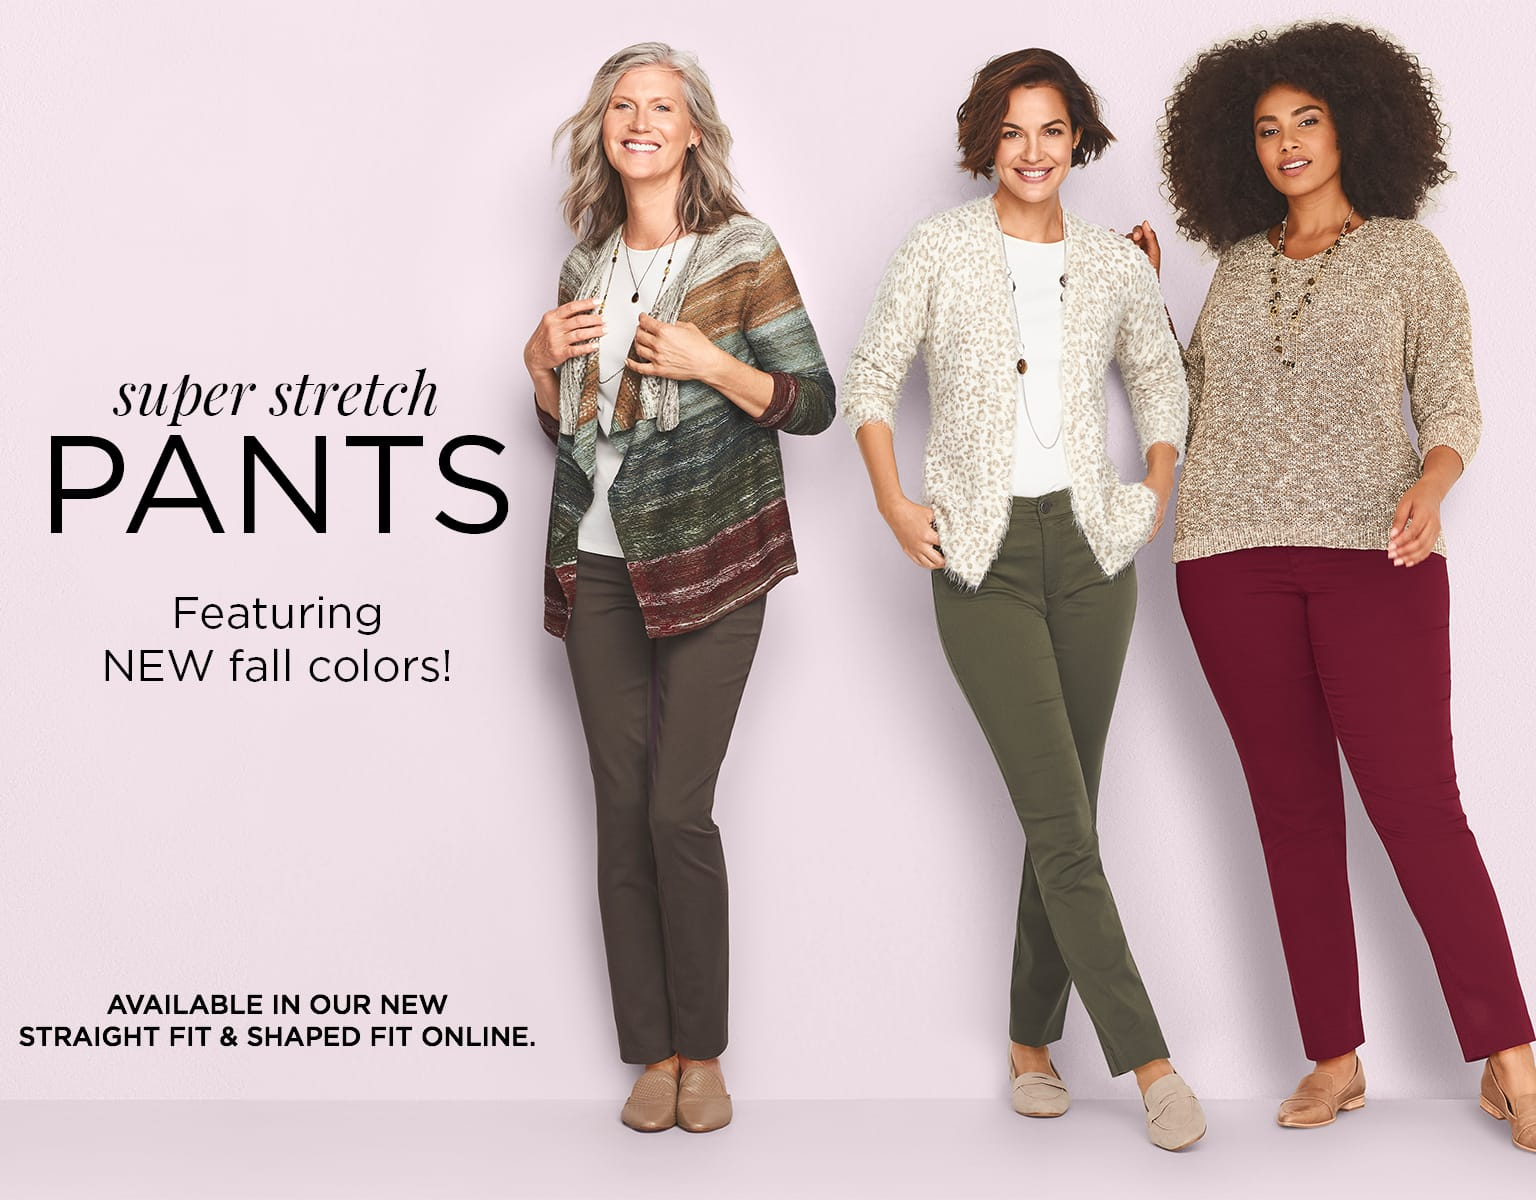 Super Stretch Pants Featuring NEW Fall Colors! Available In Our New Straight Fit $ Shaped Fit Online.